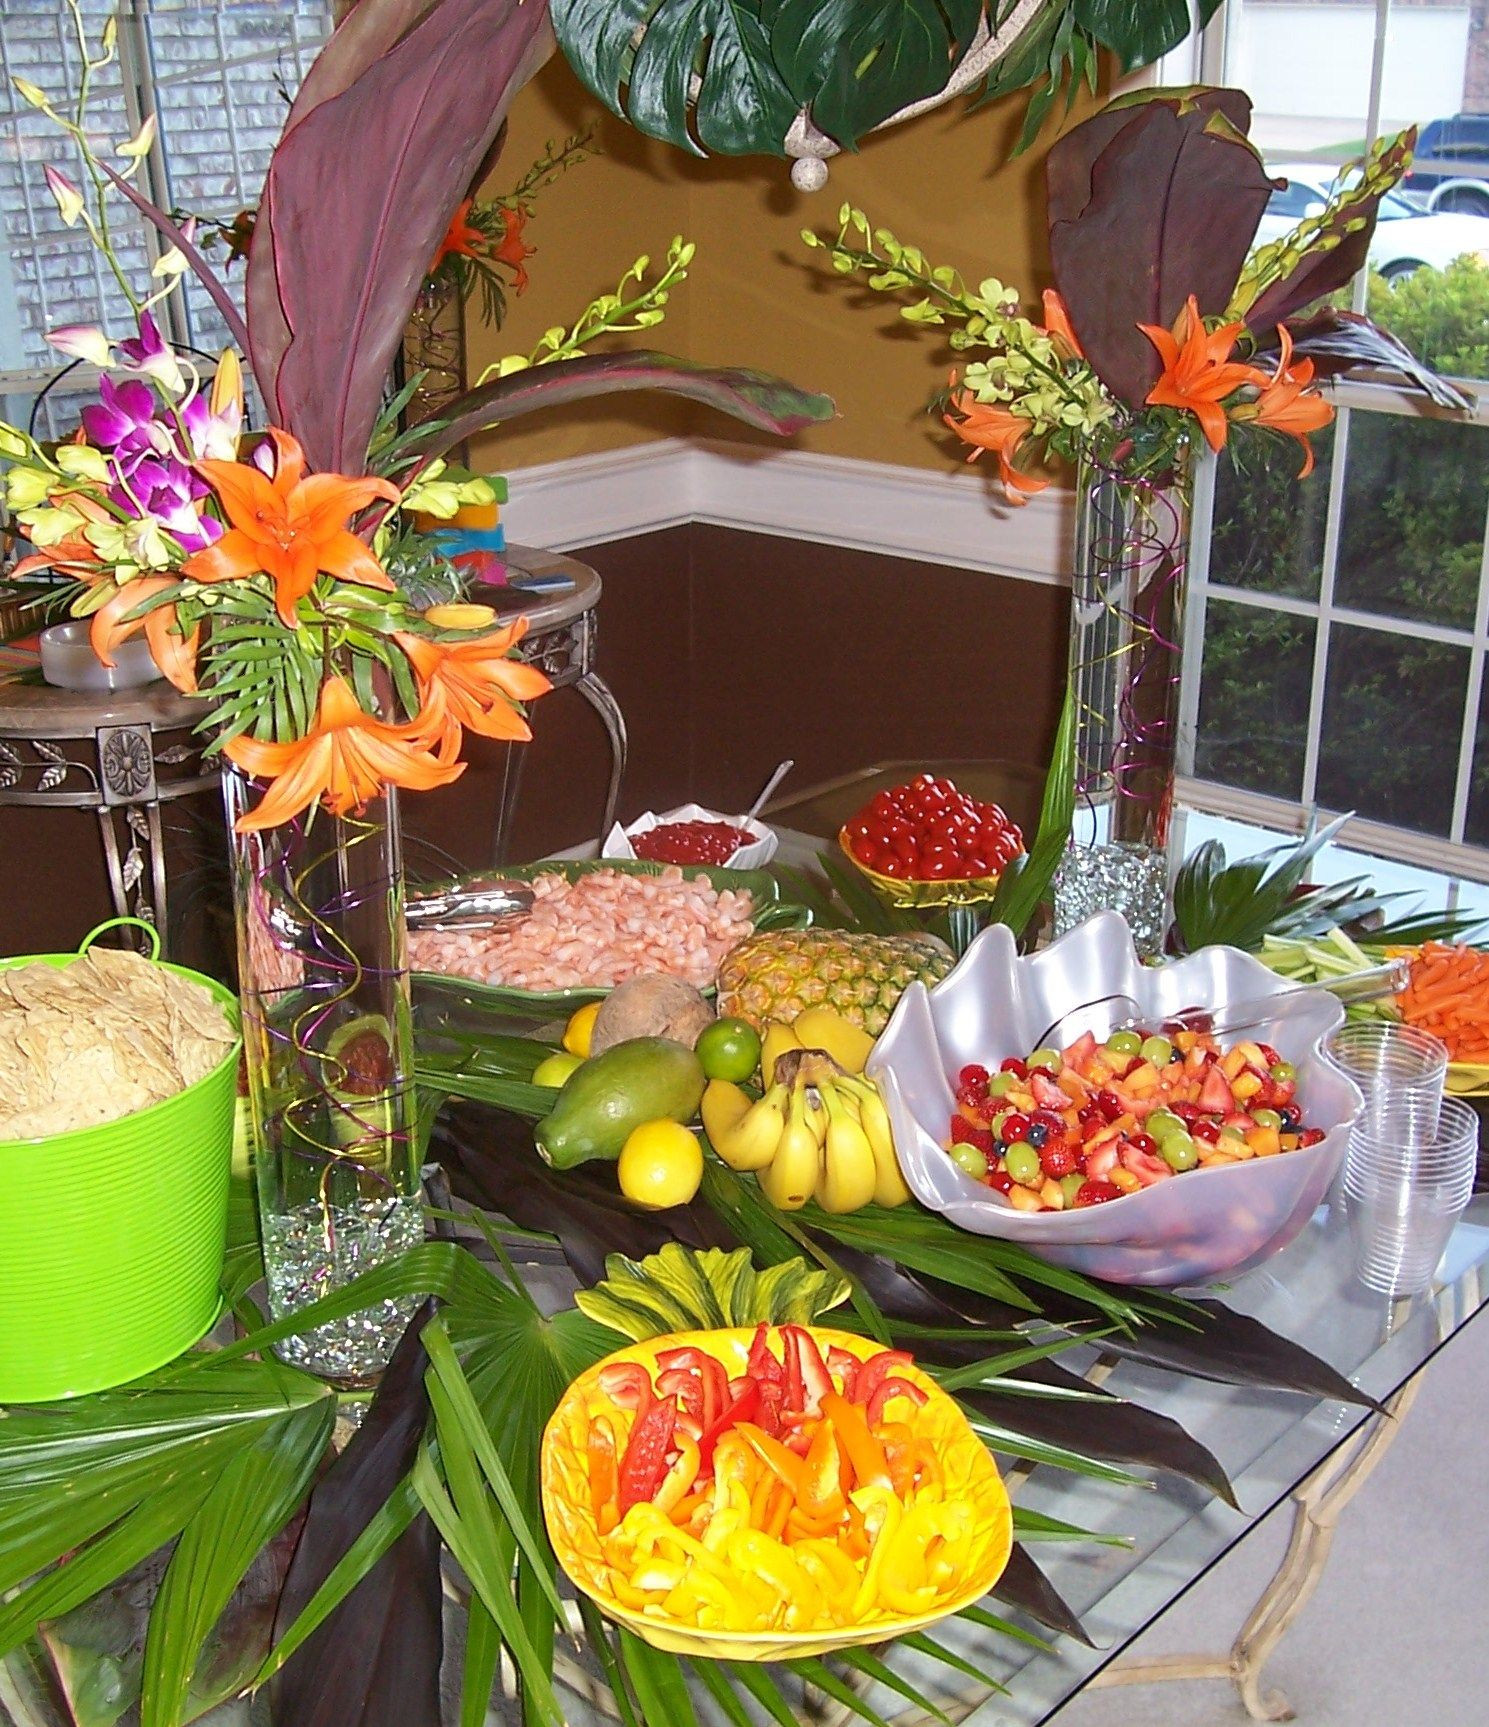 vase rentals miami of tropical party food some of these look like good things to dip in a throughout tropical party food some of these look like good things to dip in a velata warmer full of chocolate